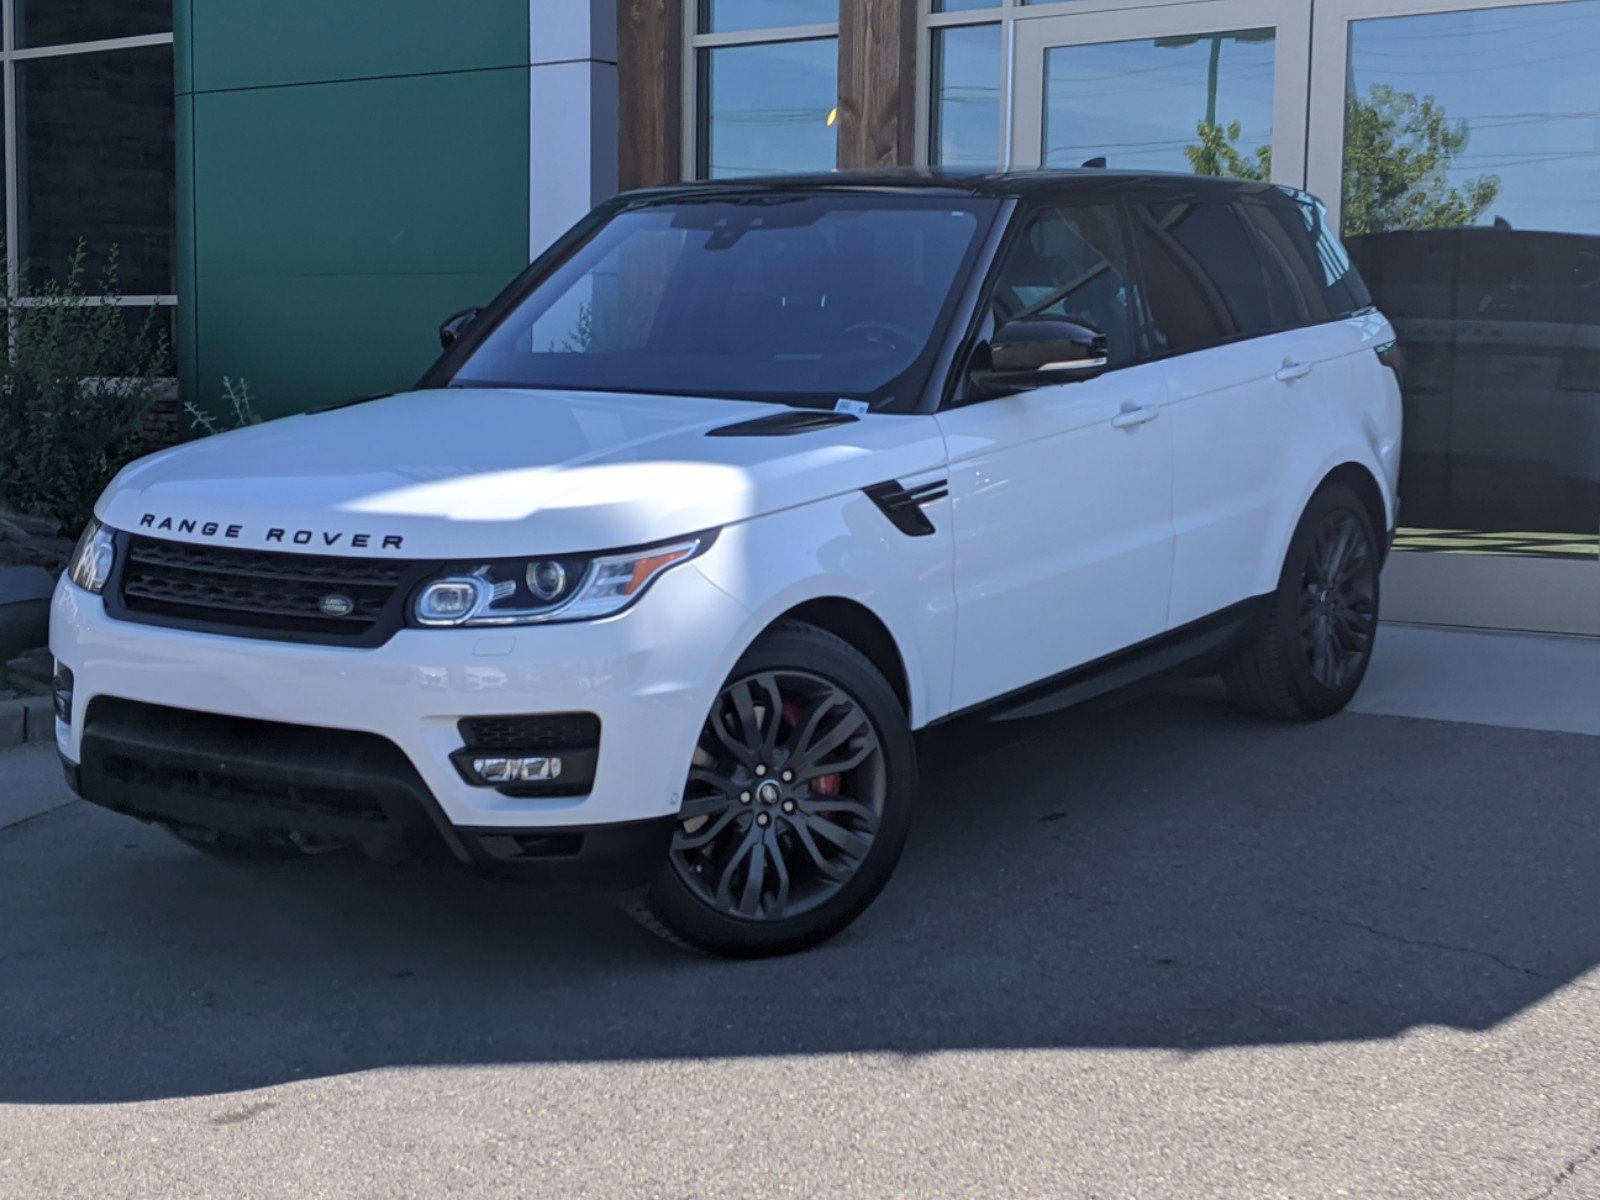 Pre-Owned 2017 Land Rover Range Rover Sport WAGON 4 DOOR